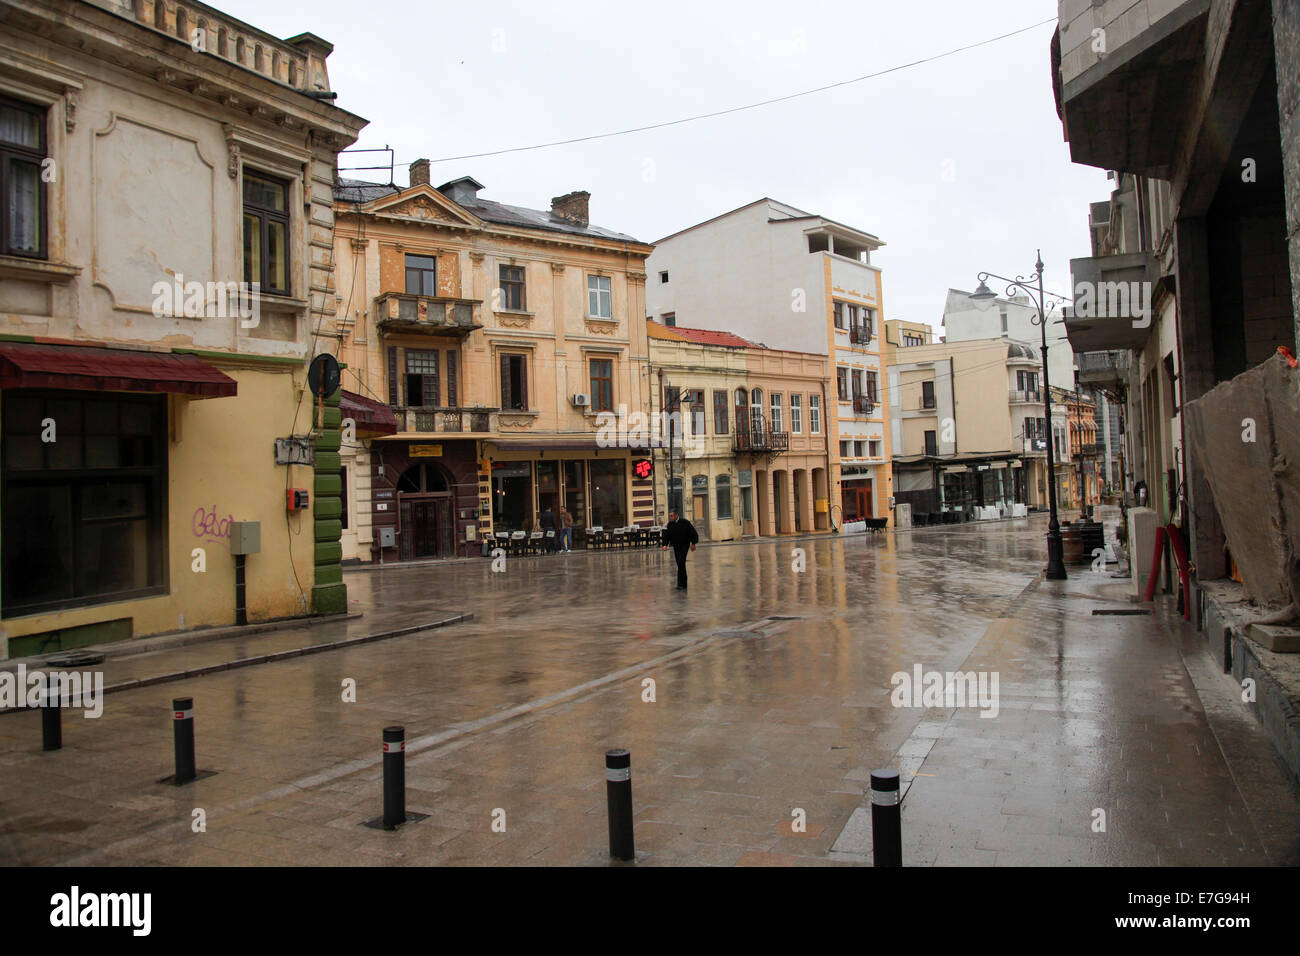 Bucharest Romania decaying buildings - Stock Image